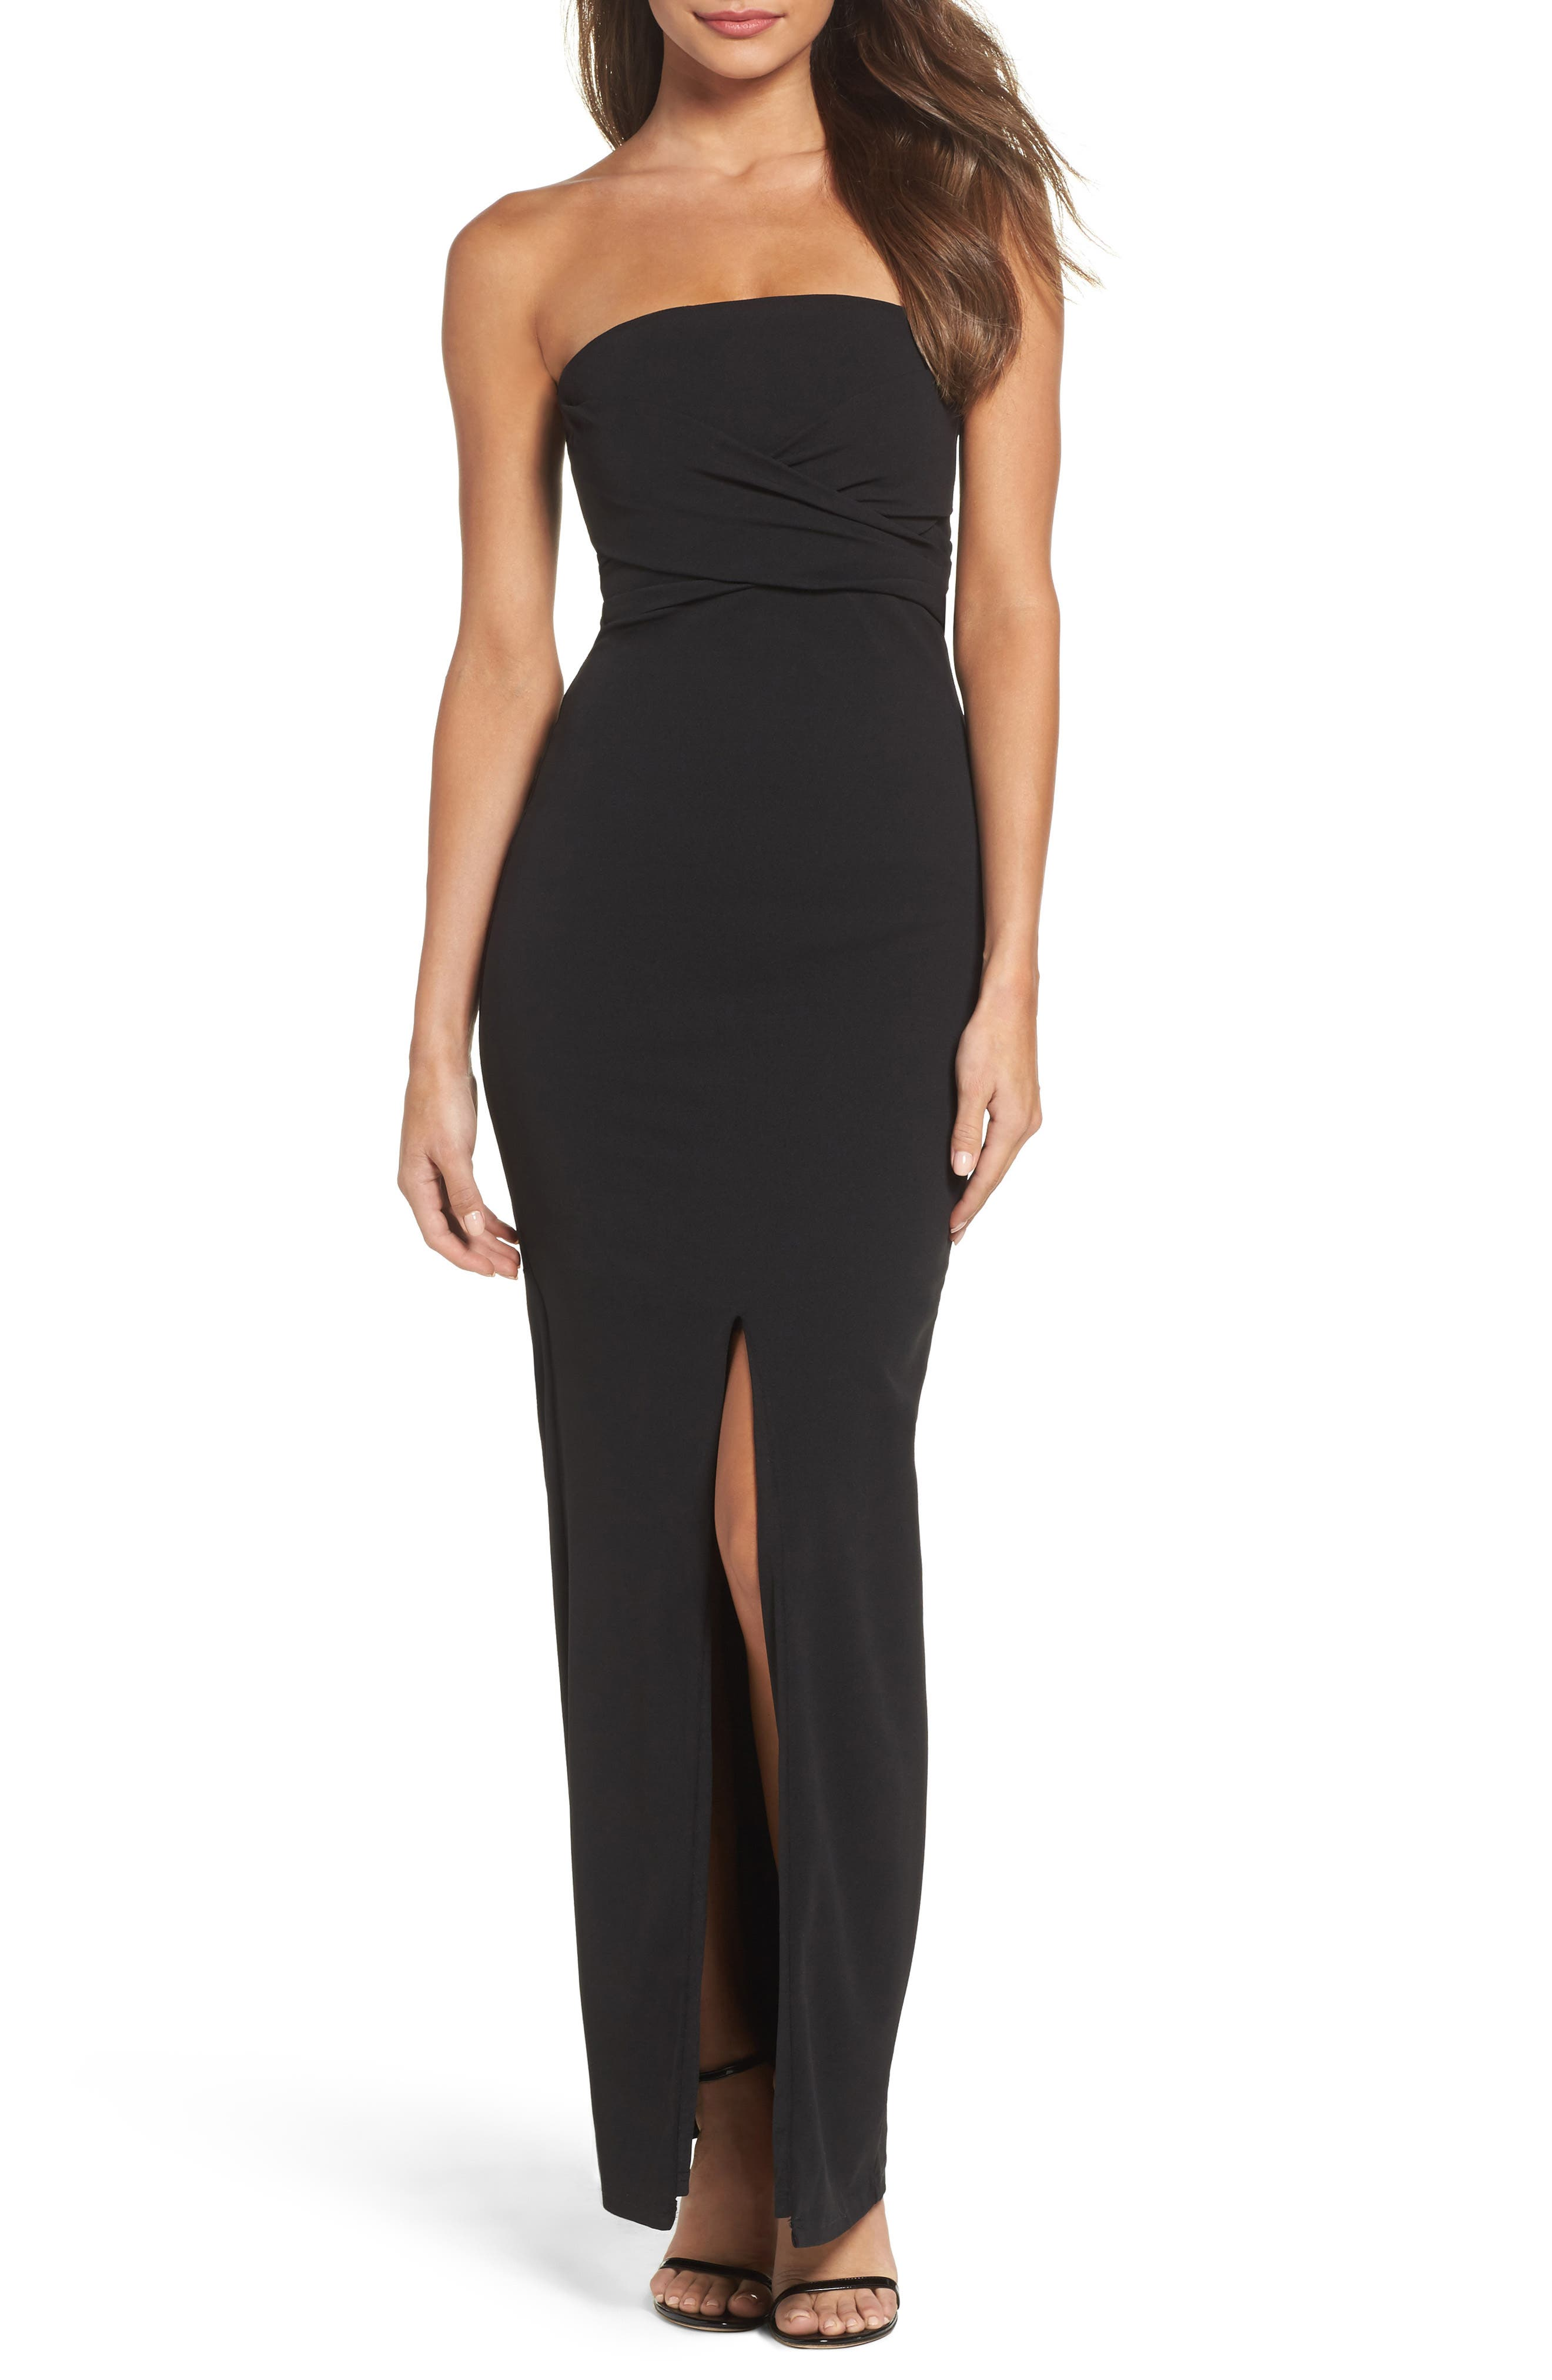 Own the Night Strapless Maxi Dress,                             Main thumbnail 1, color,                             001